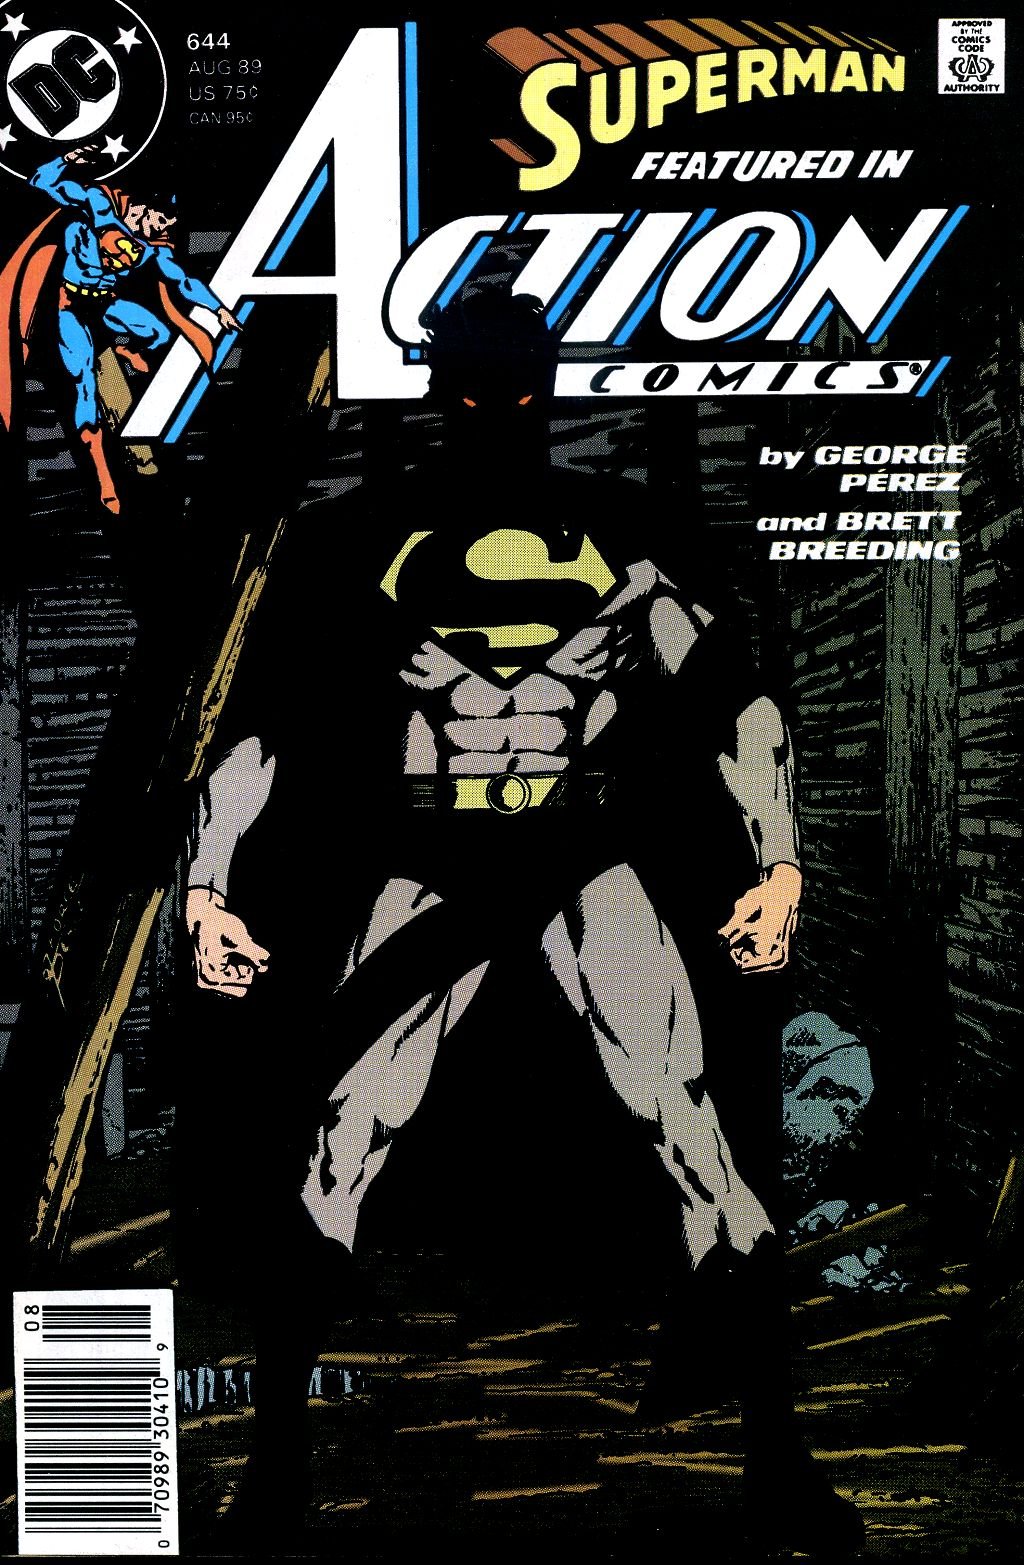 Read online Action Comics (1938) comic -  Issue #644 - 1